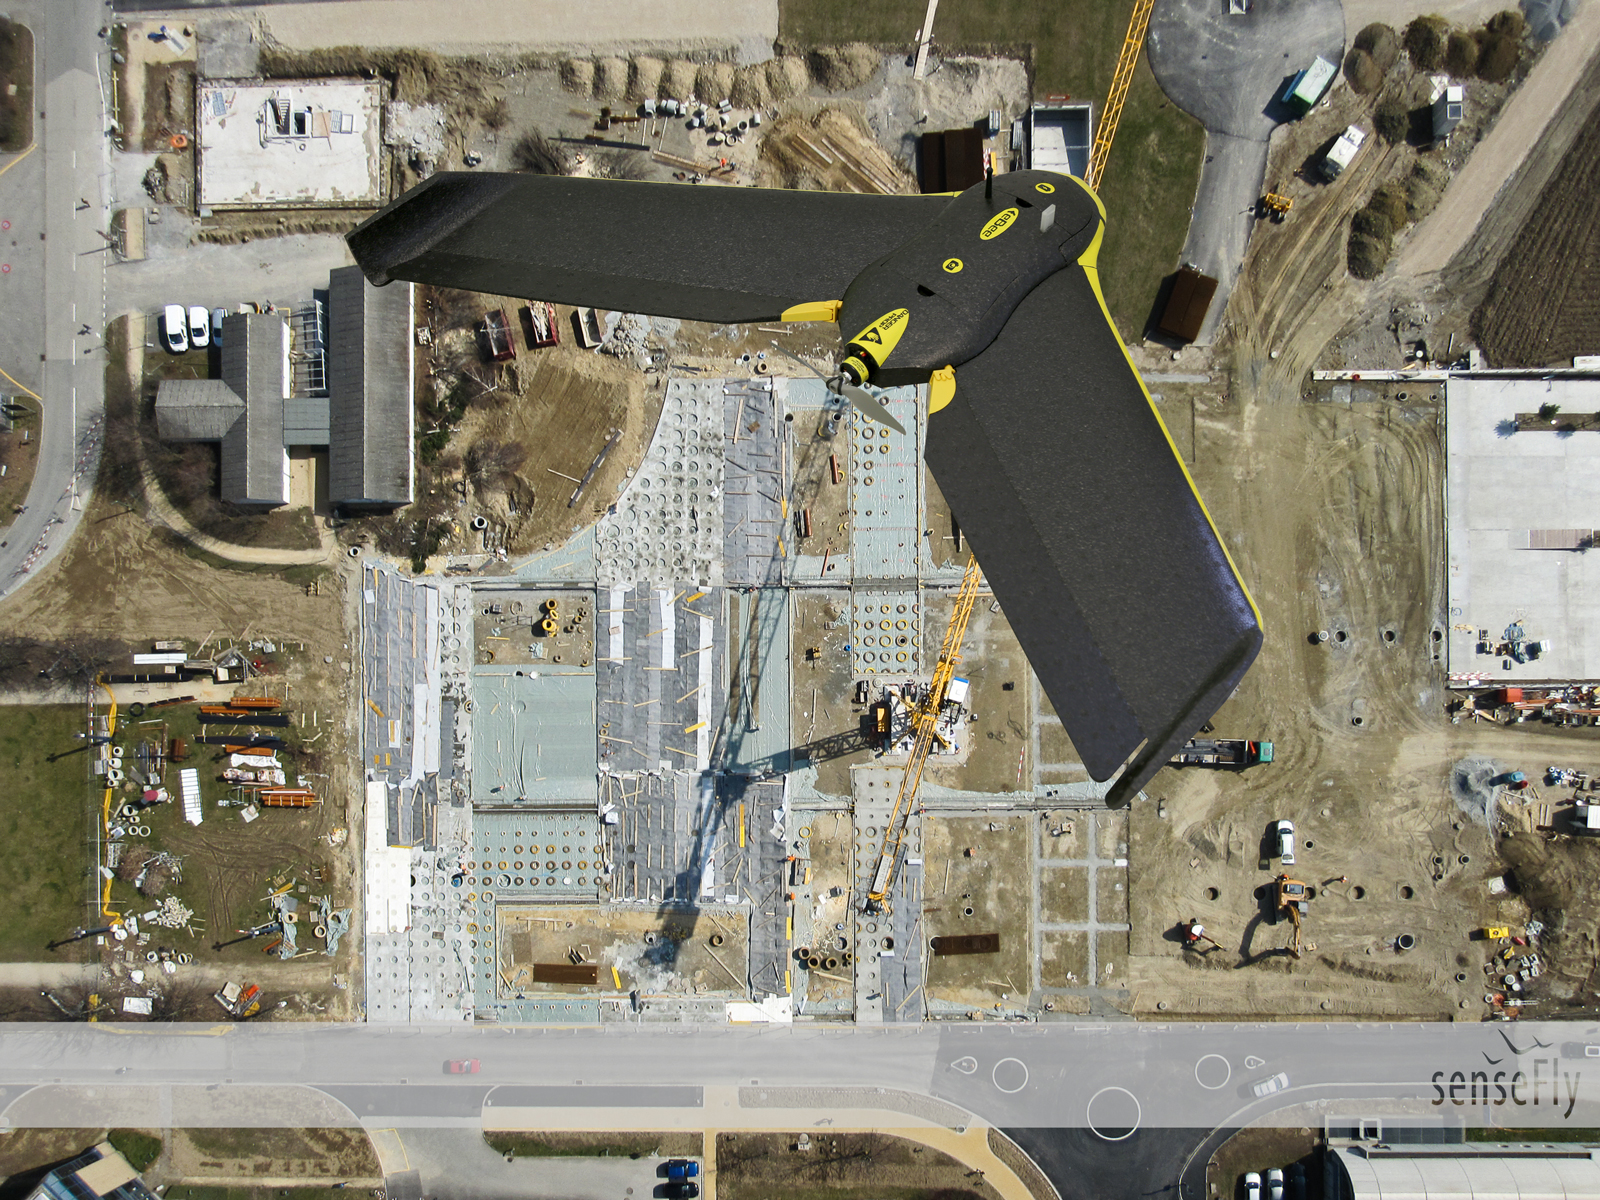 sensefly drone over construction site